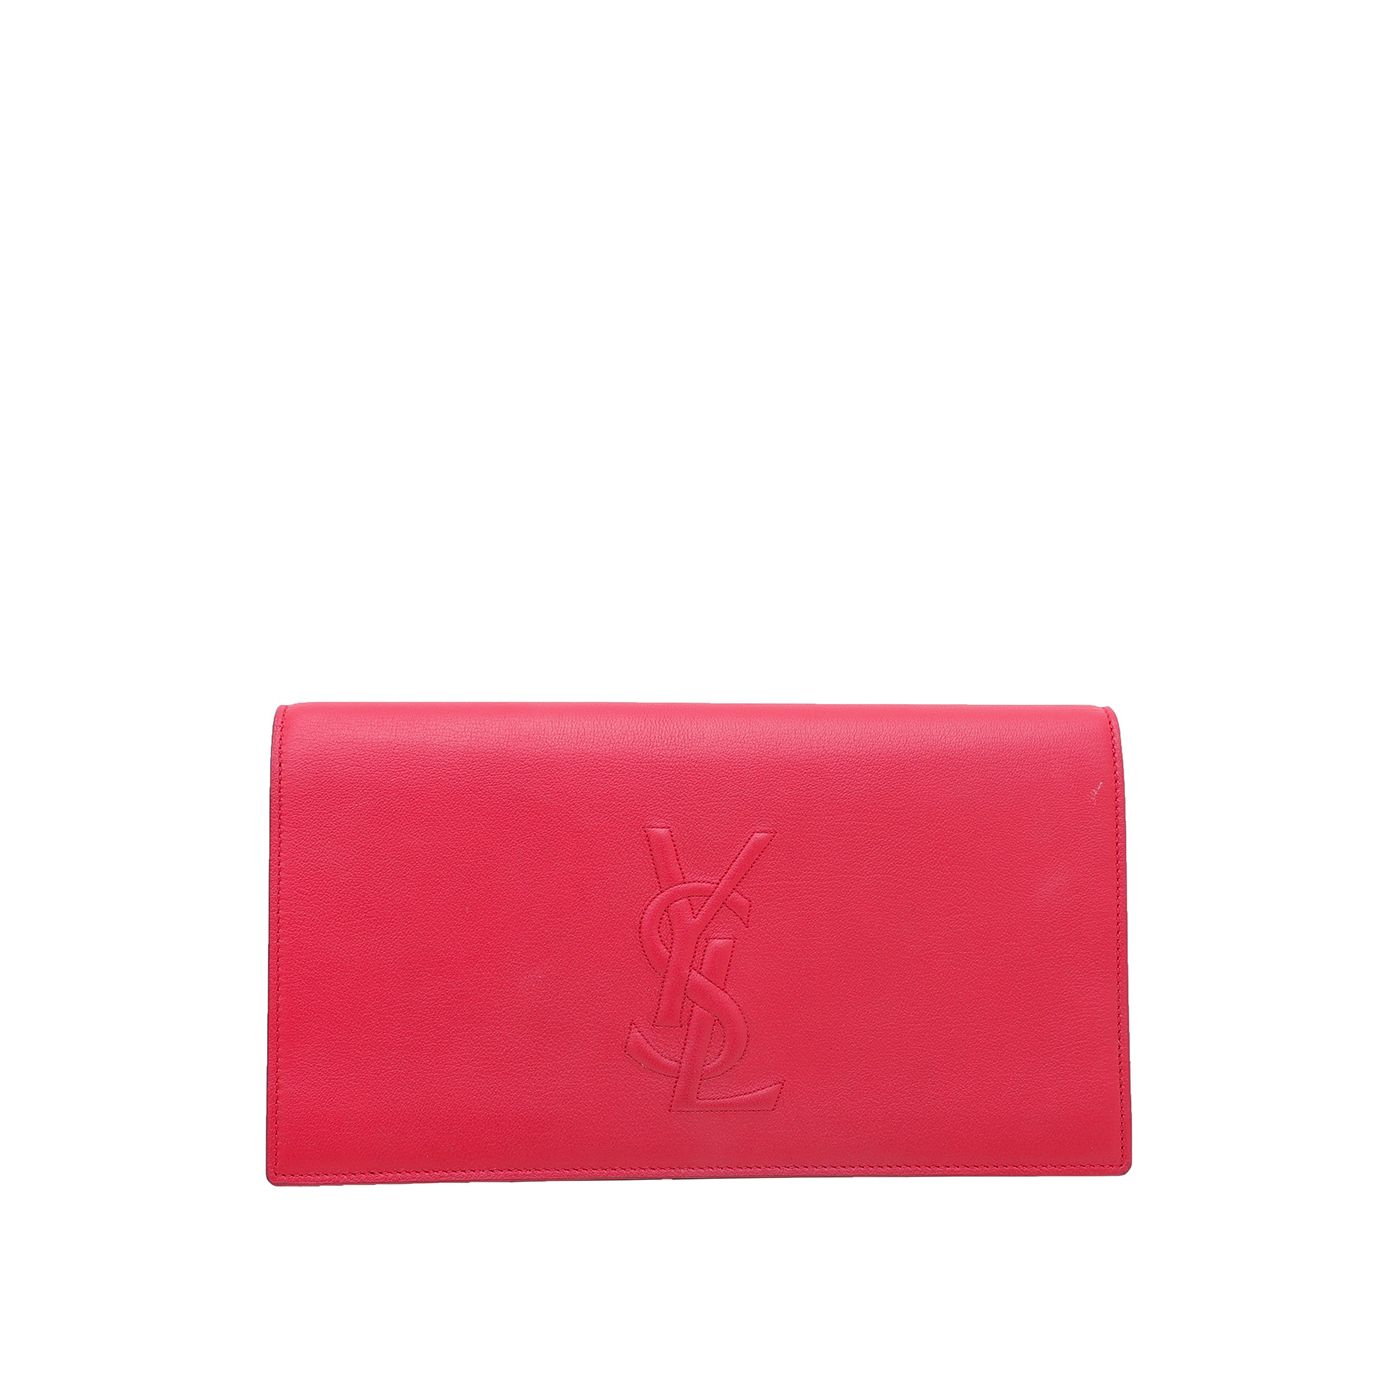 YSL Red Belle De Jour Clutch